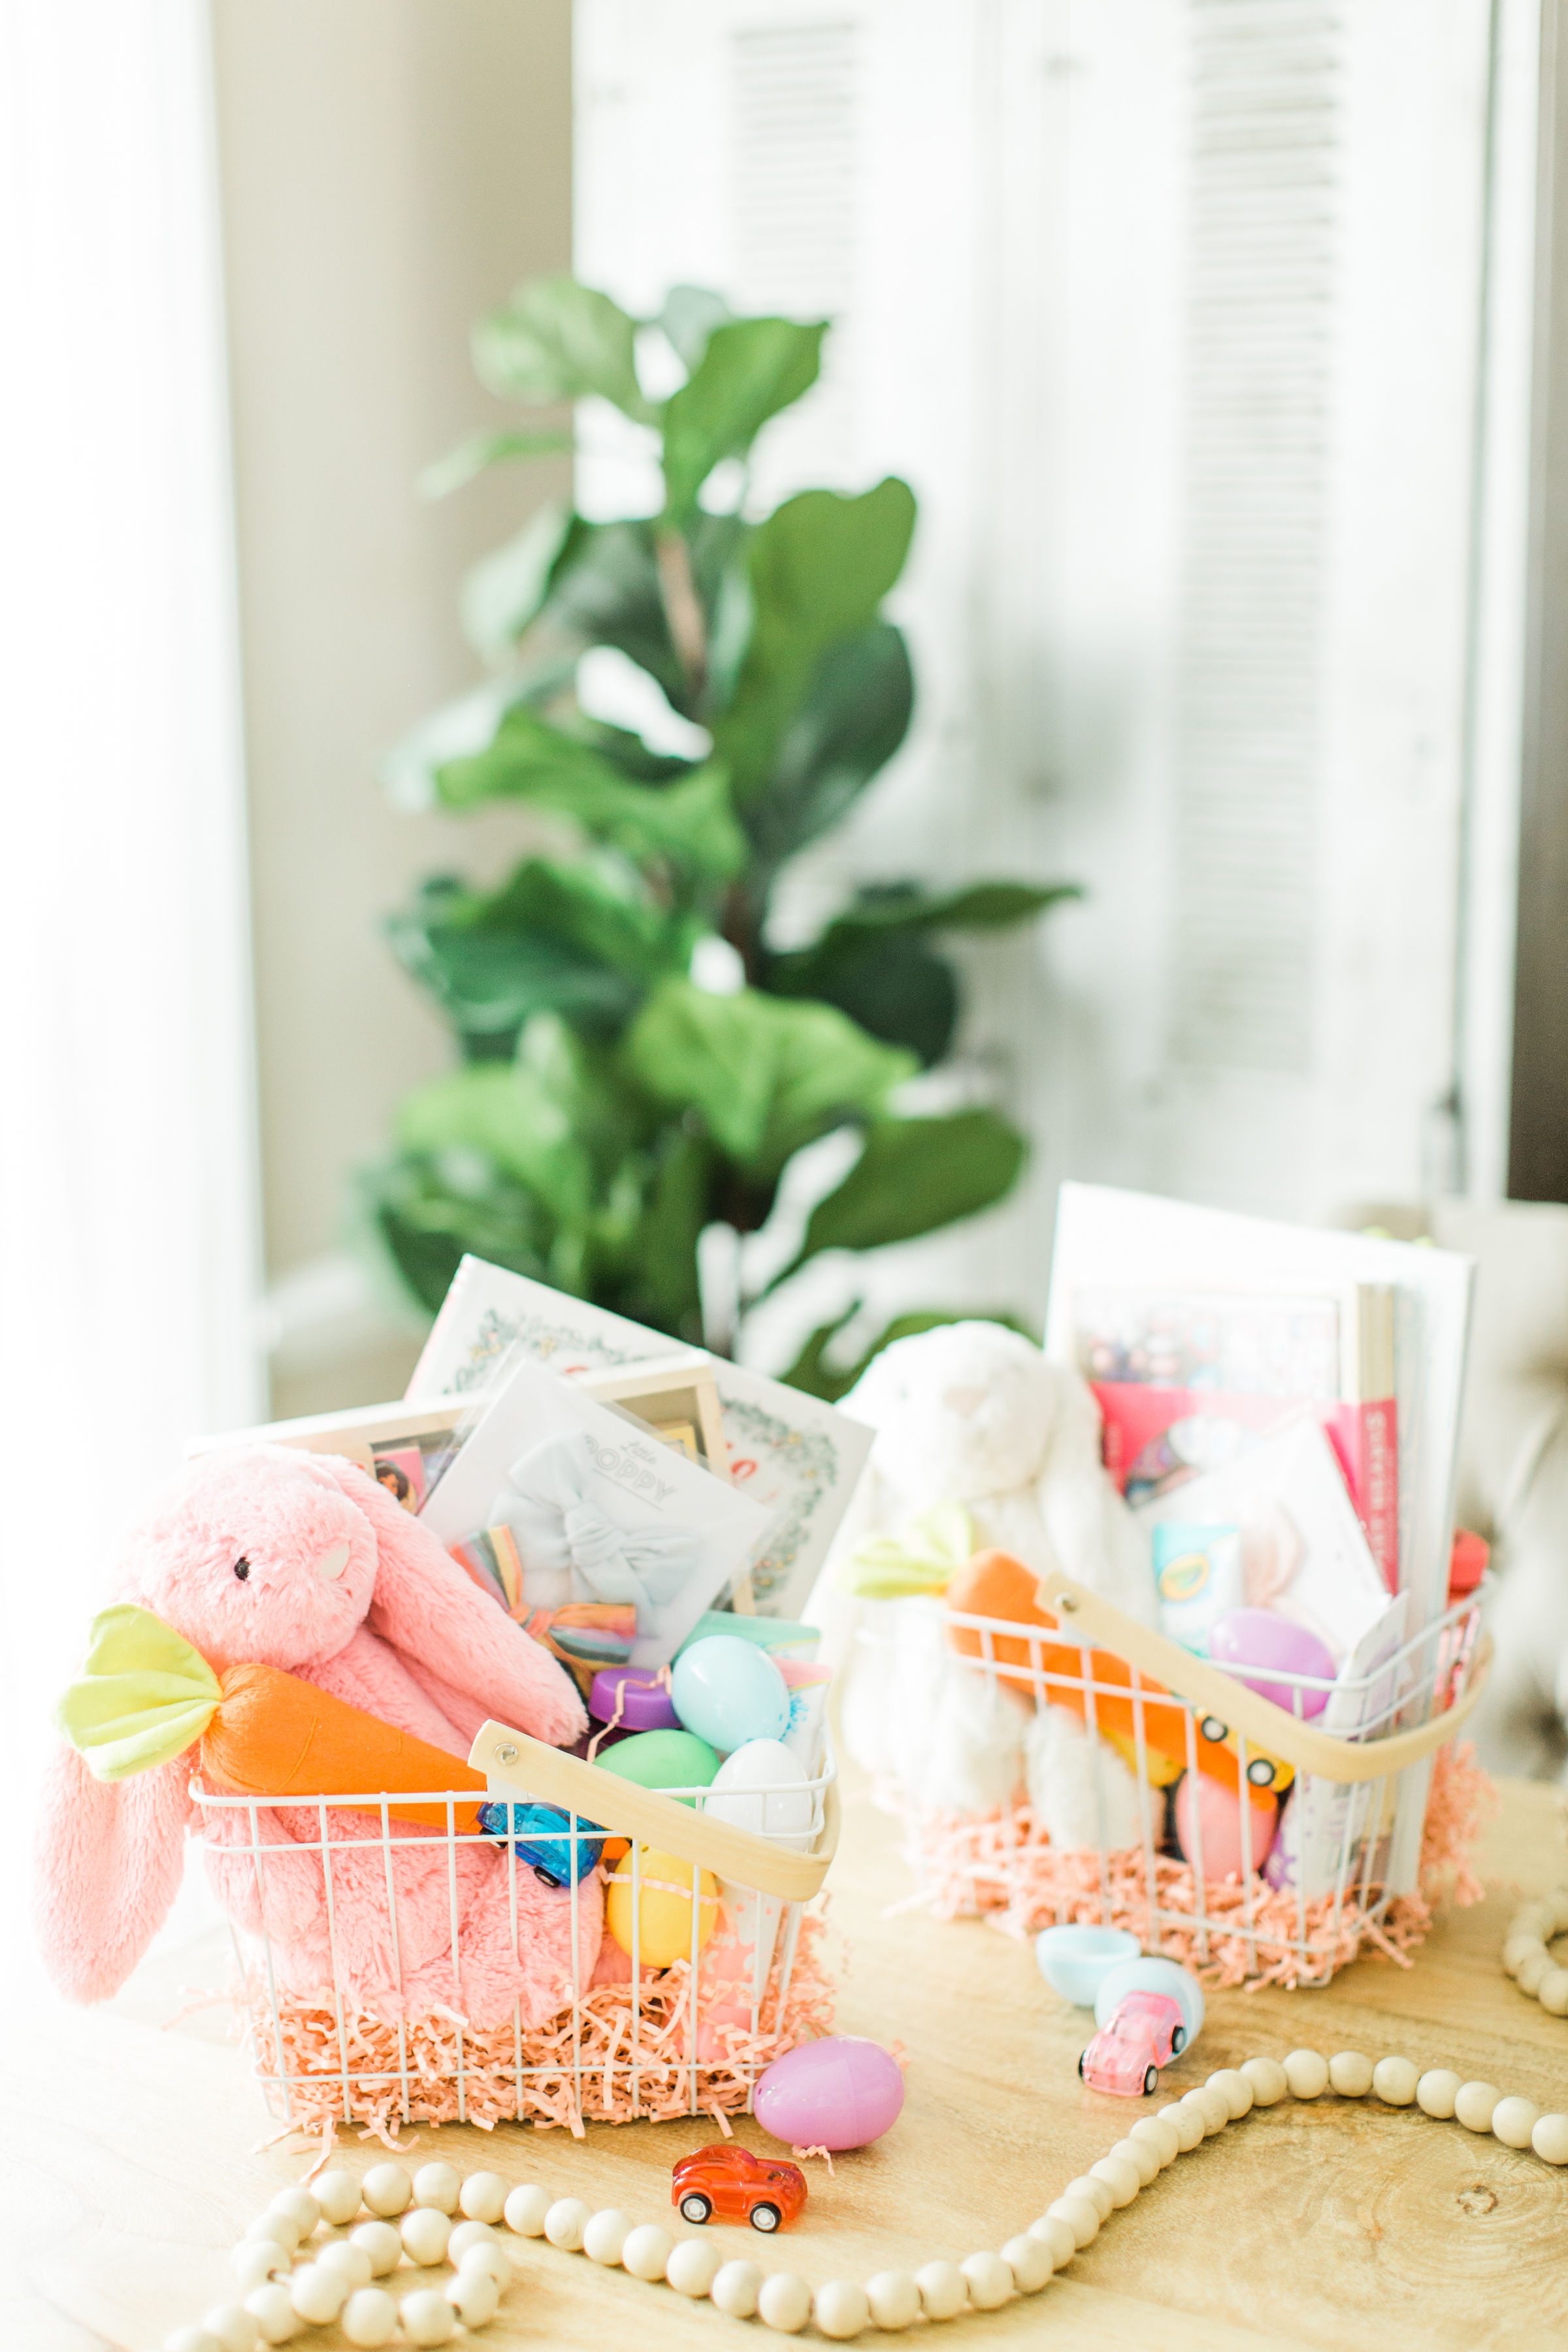 We're showing you everything we put in our own kids' Easter baskets this year and how to make your own! | glitterinc.com | @glitterinc